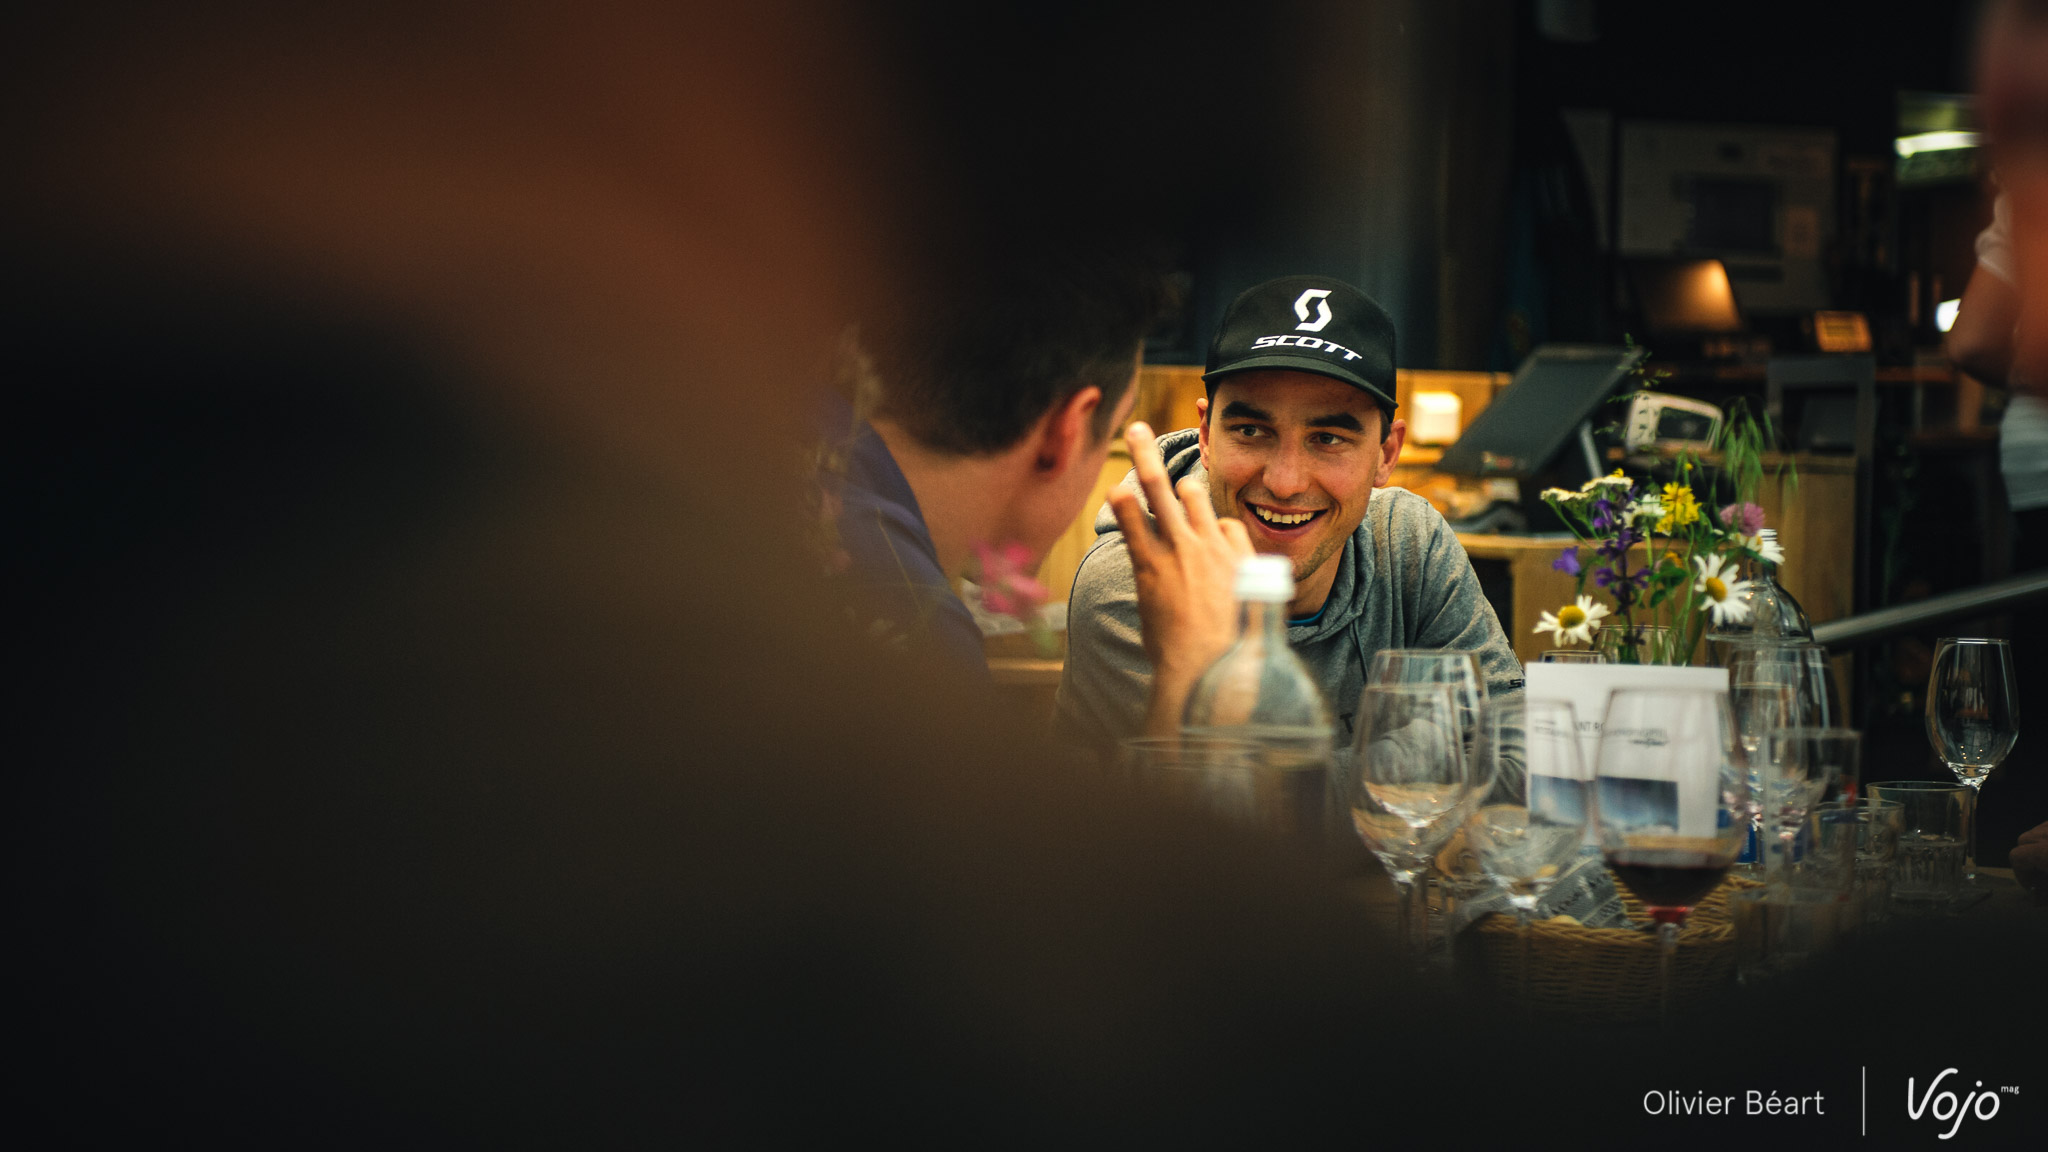 Nino_Schurter_Interview_Scott_Spark_Scale_Portrait_Copyright_OBeart_VojoMag-4